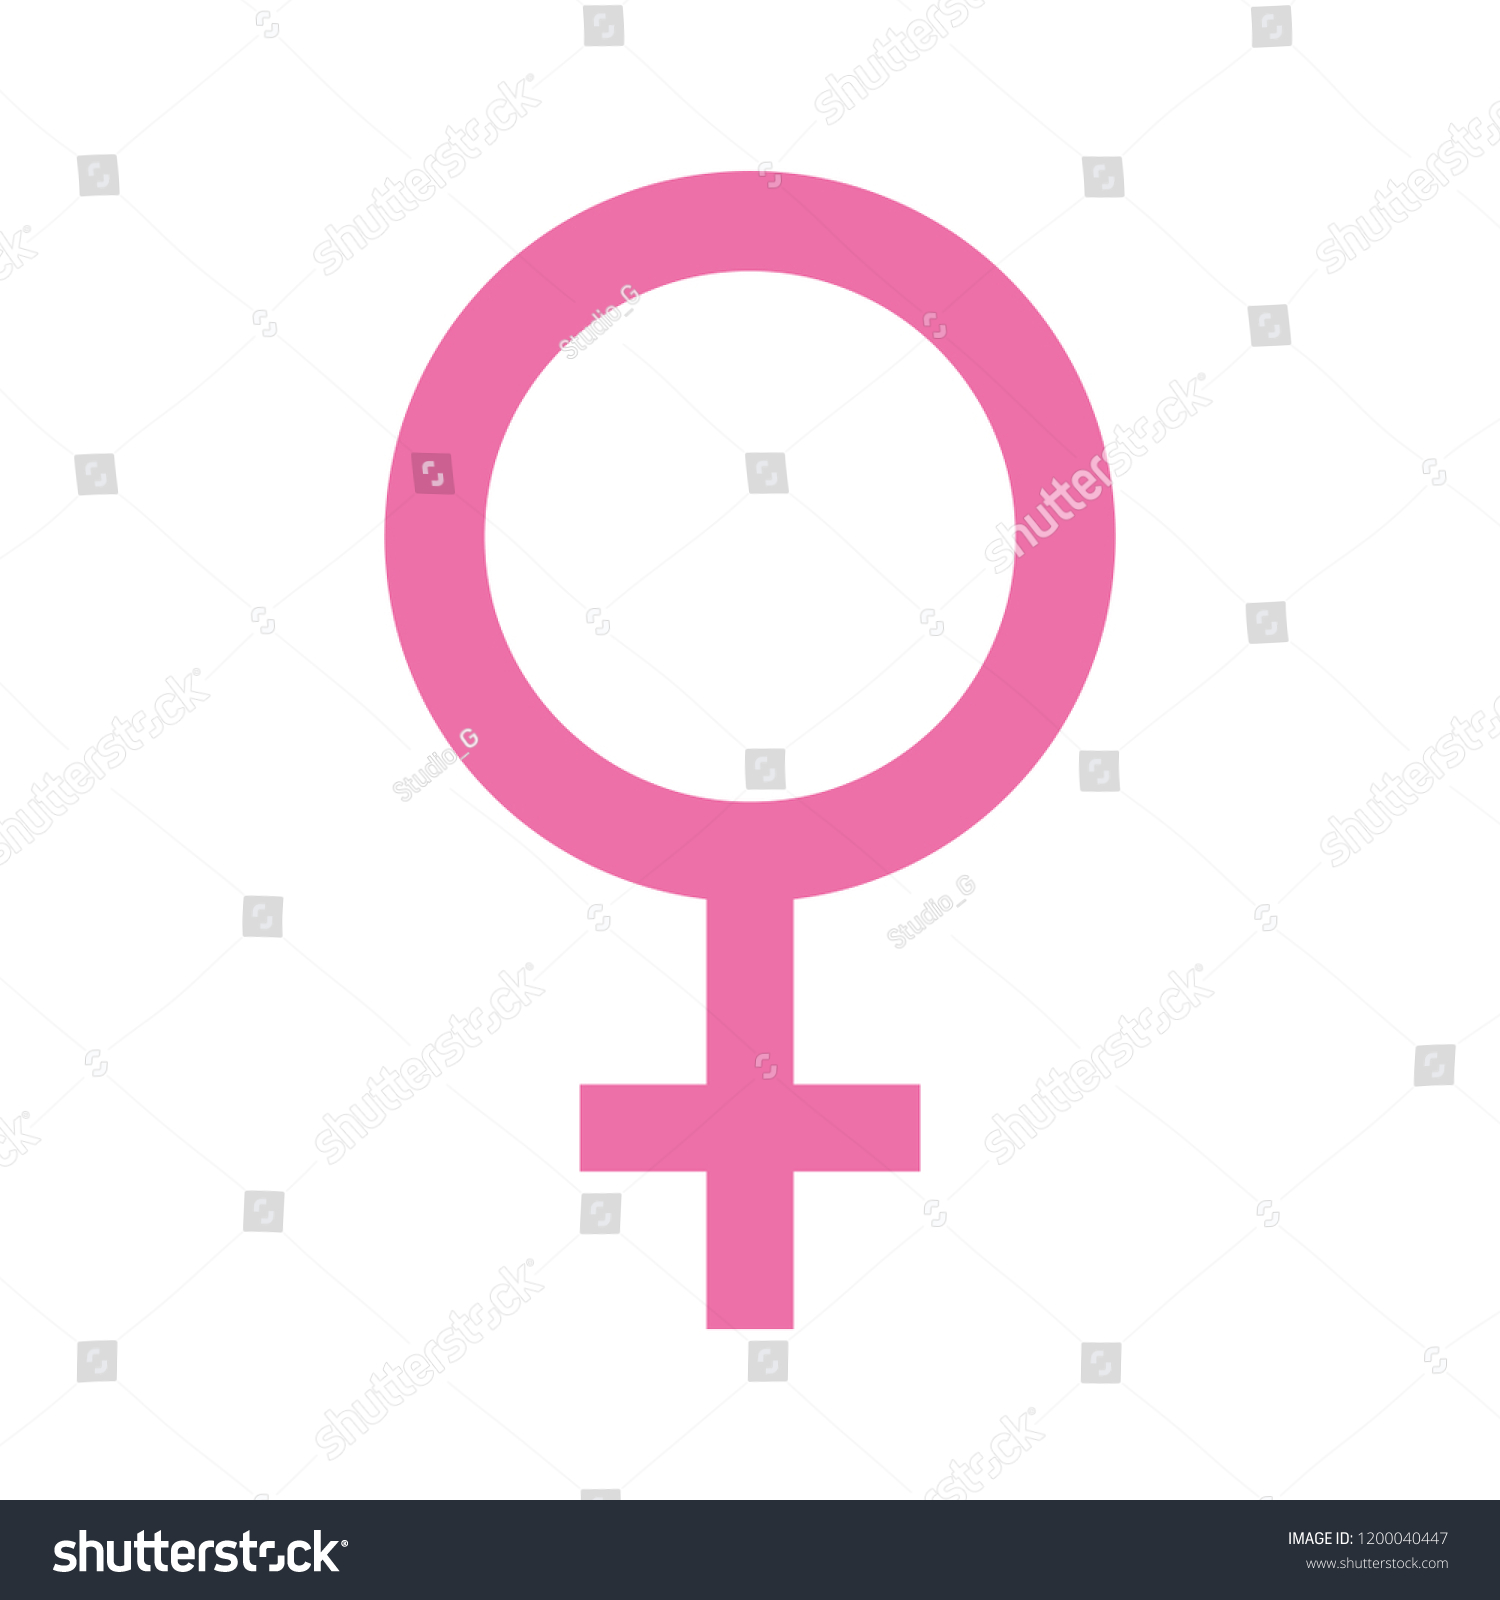 femenine gender symbol icon #1200040447